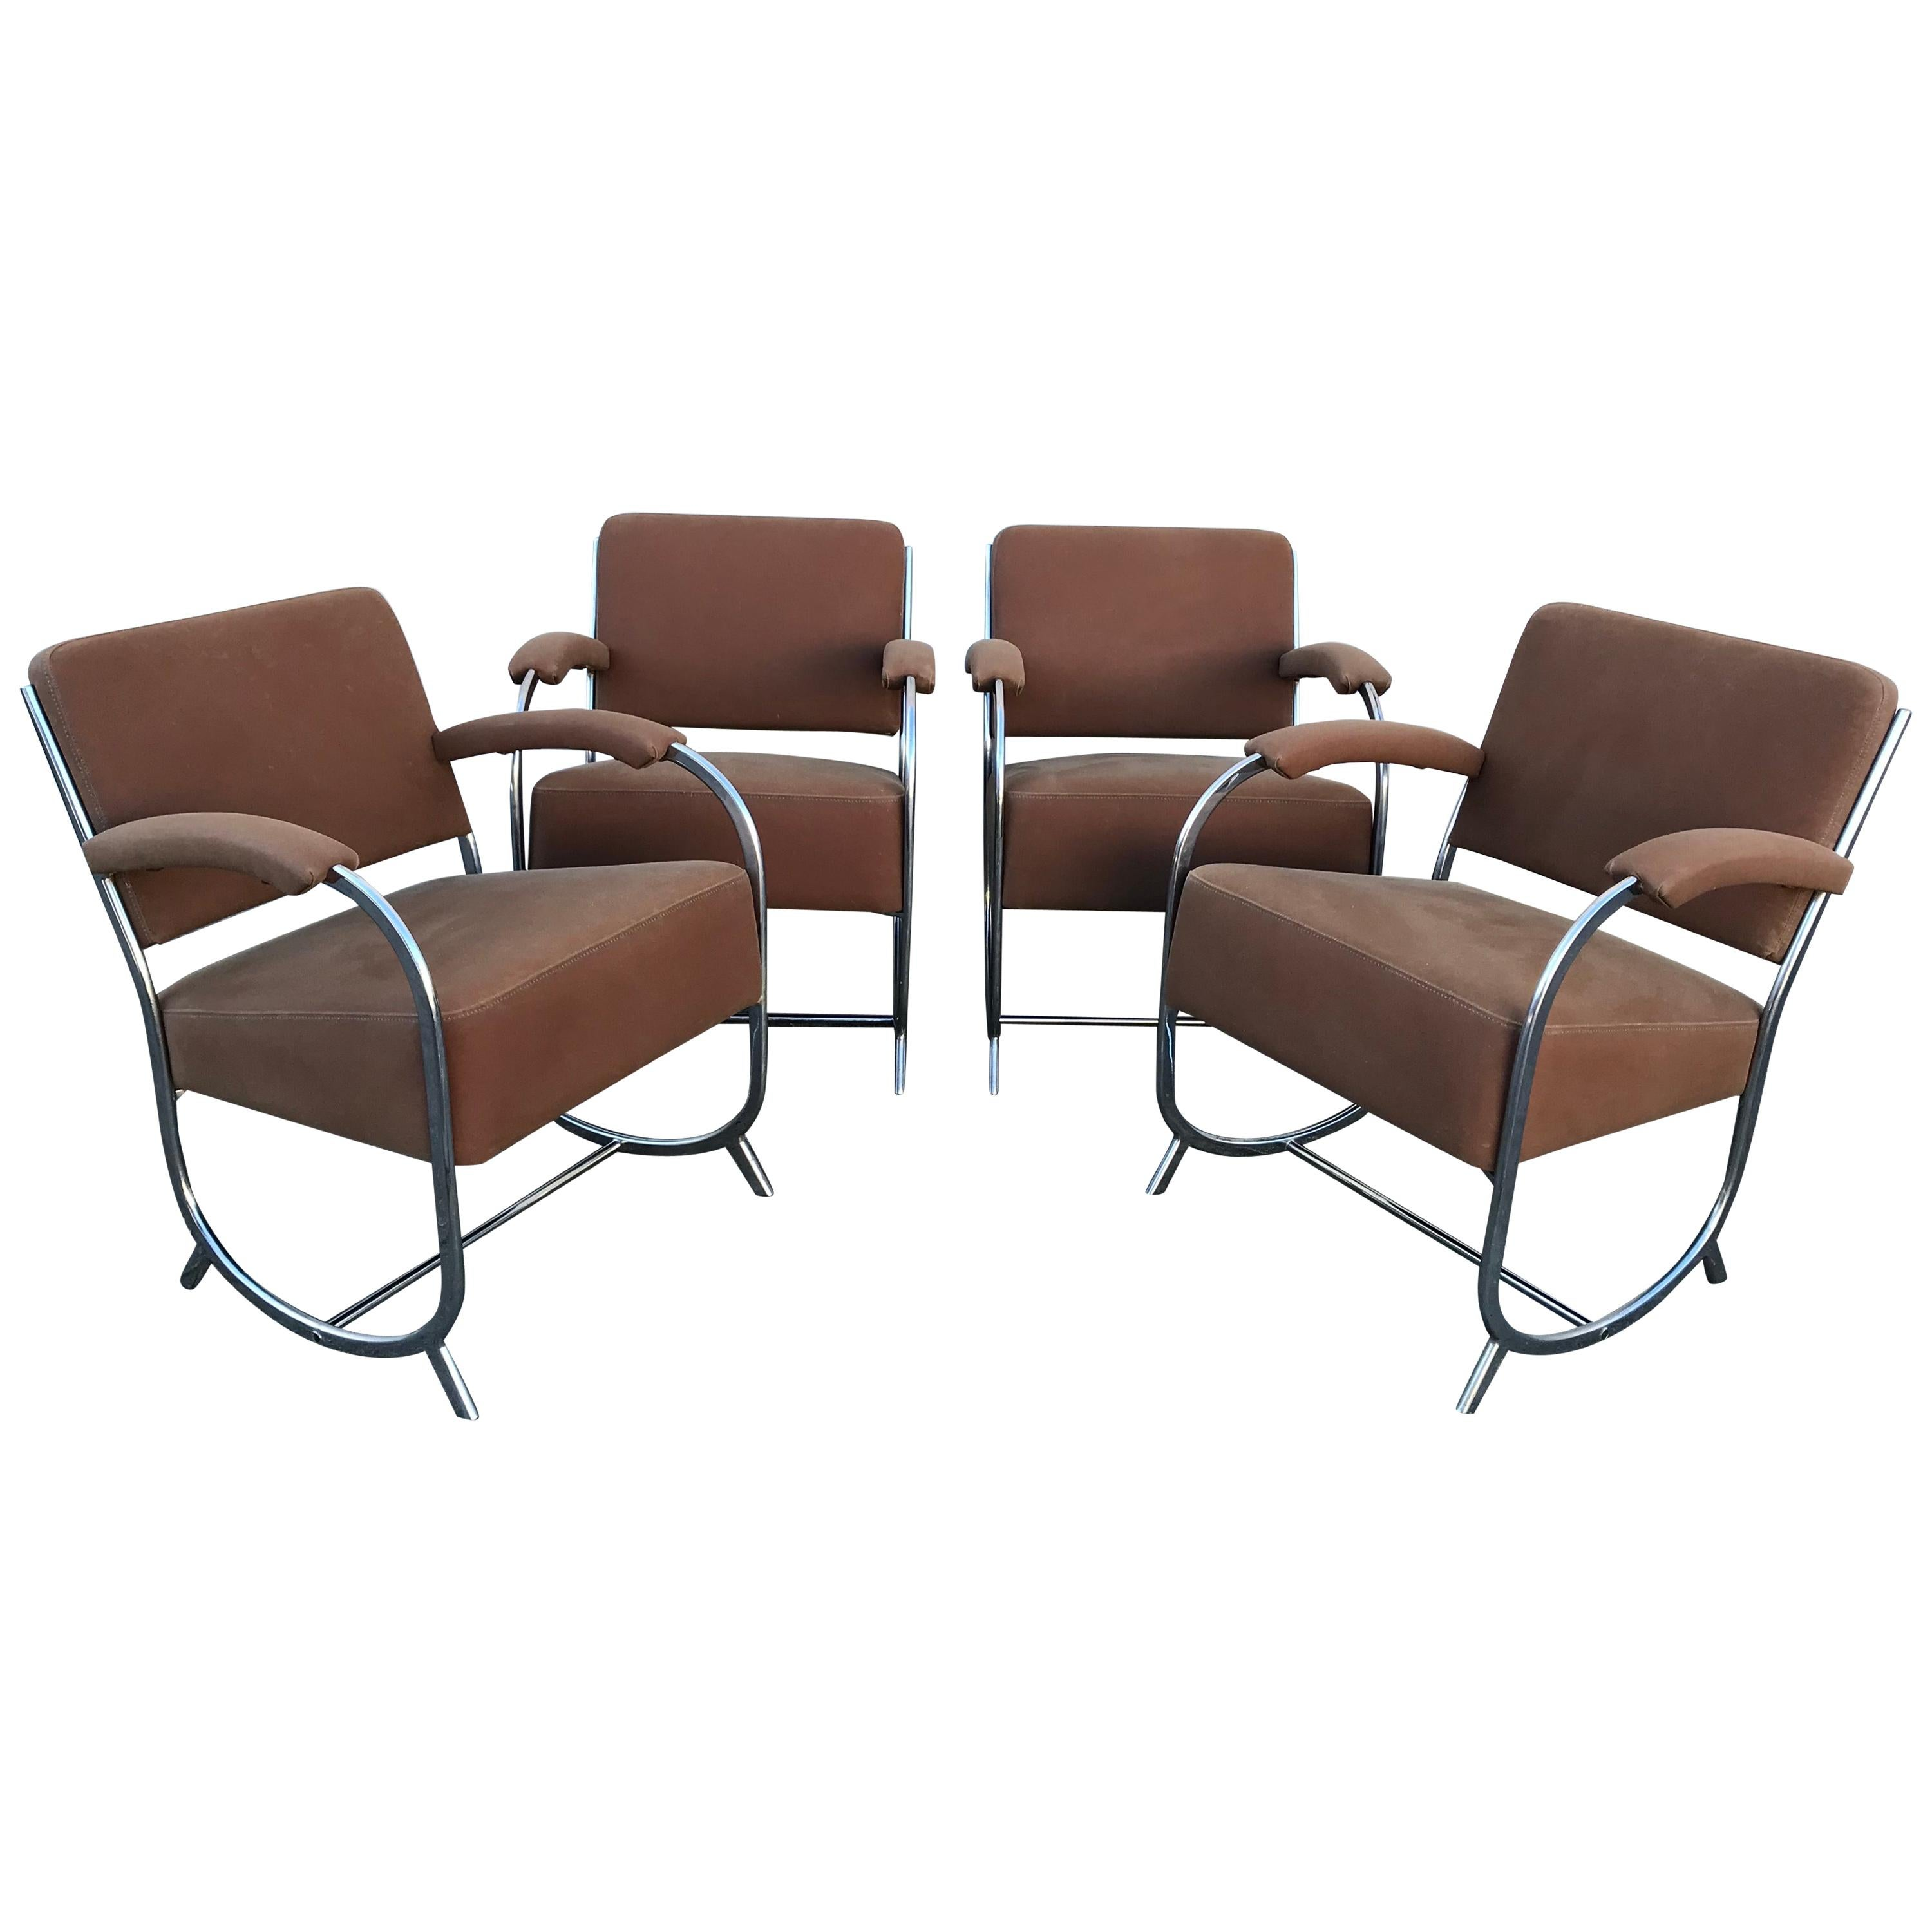 Four Theo A Kochs Streamline Modern Club Chairs in the Style of KEM Weber, 1930s